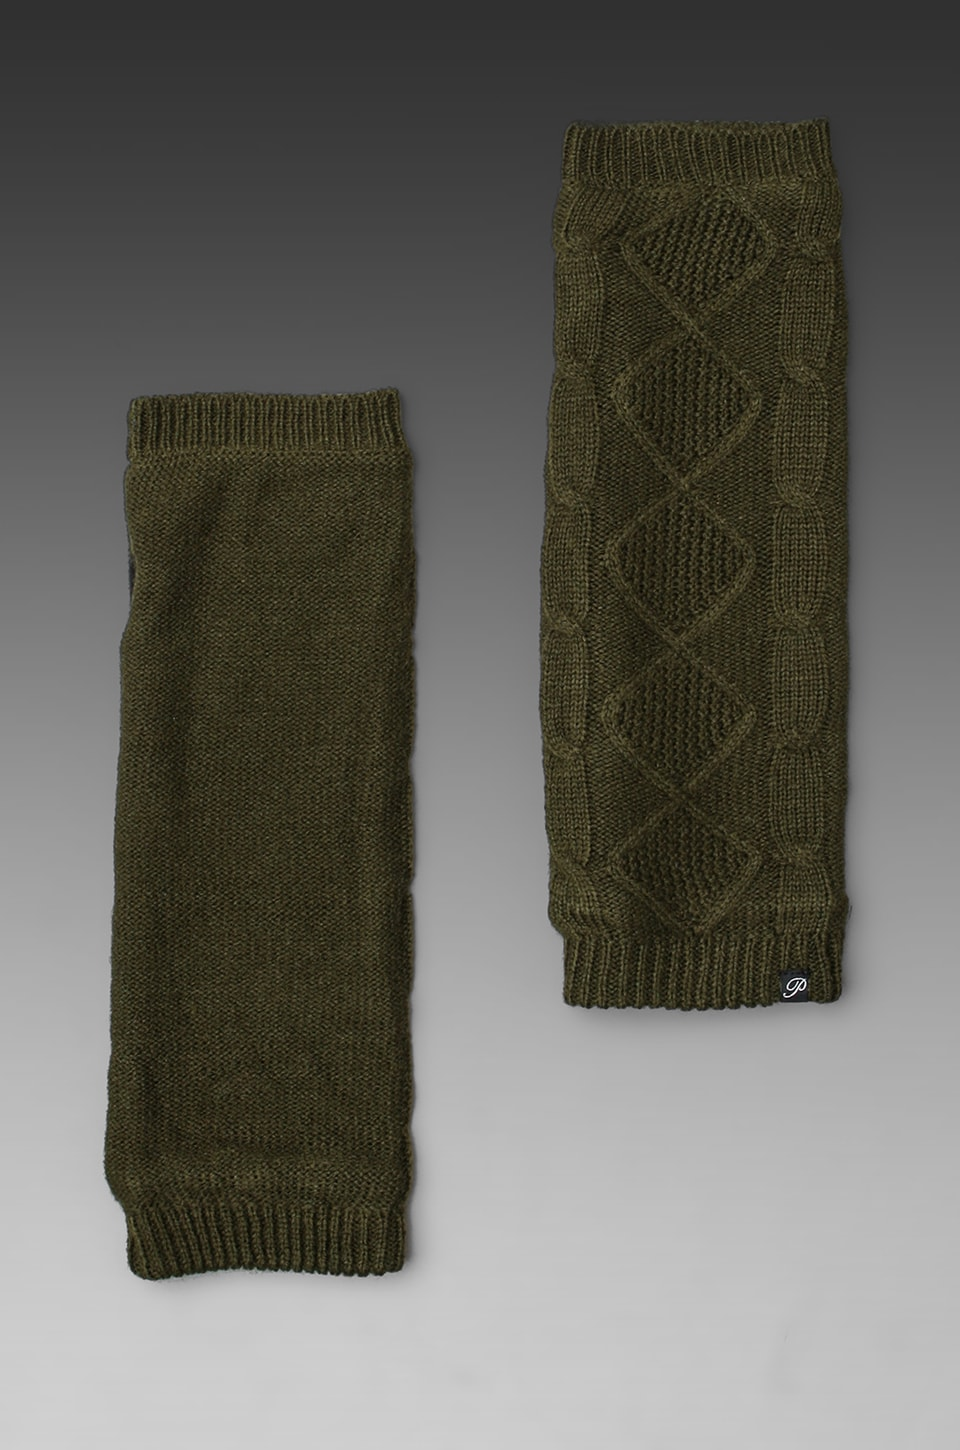 Plush Cable Knit Fleece Lined Armwarmer in Army